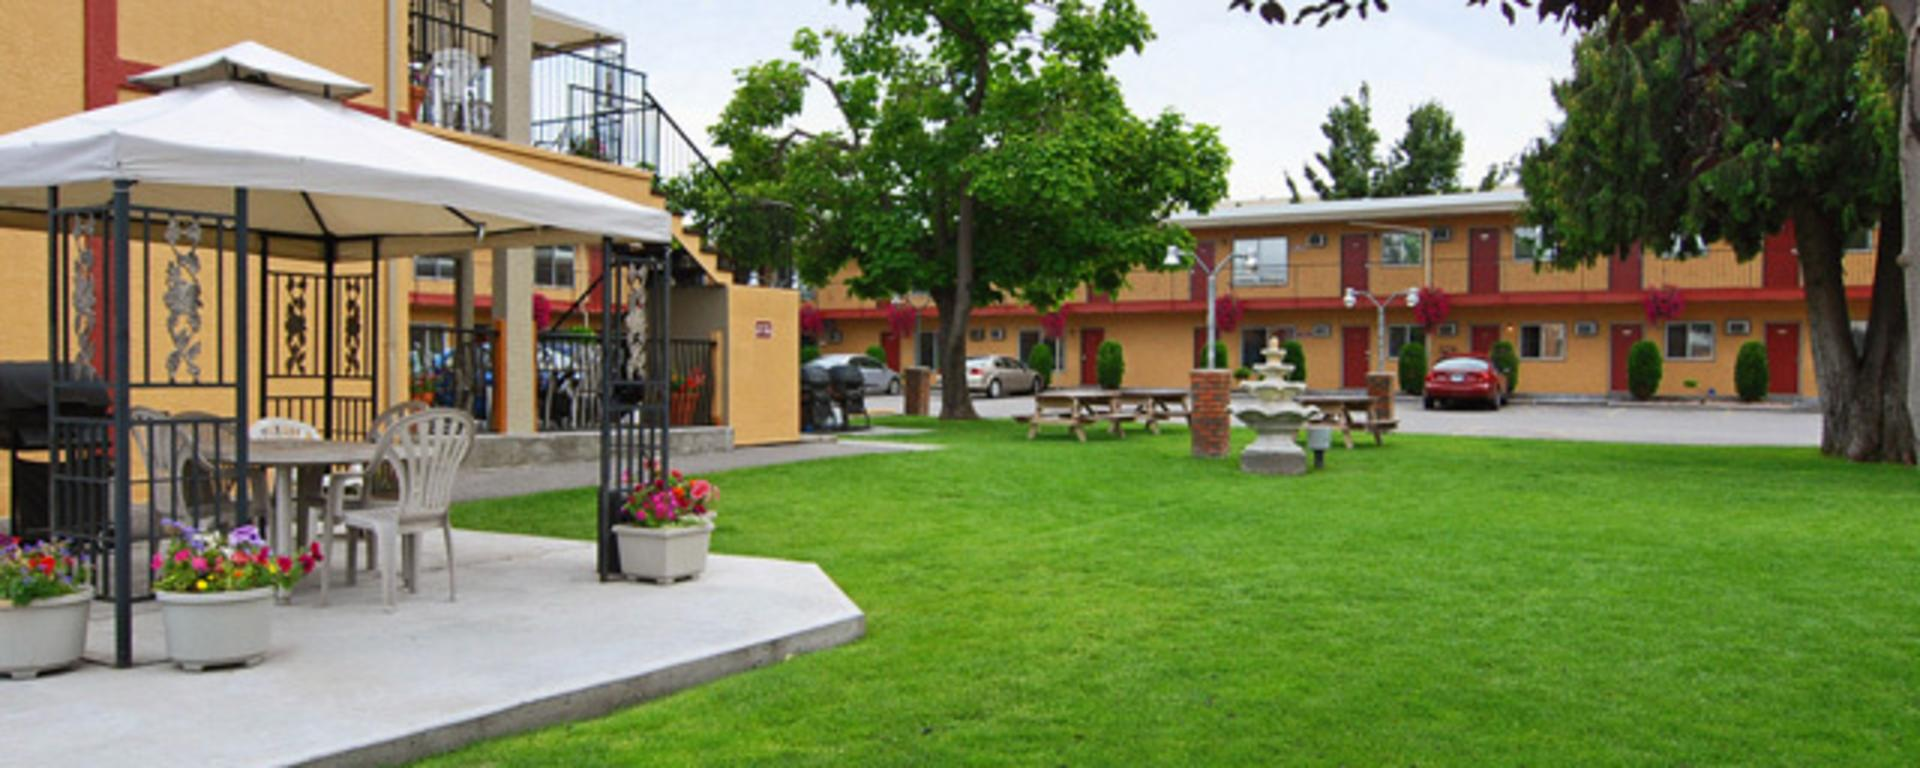 Chinook and Oasis Motel Image